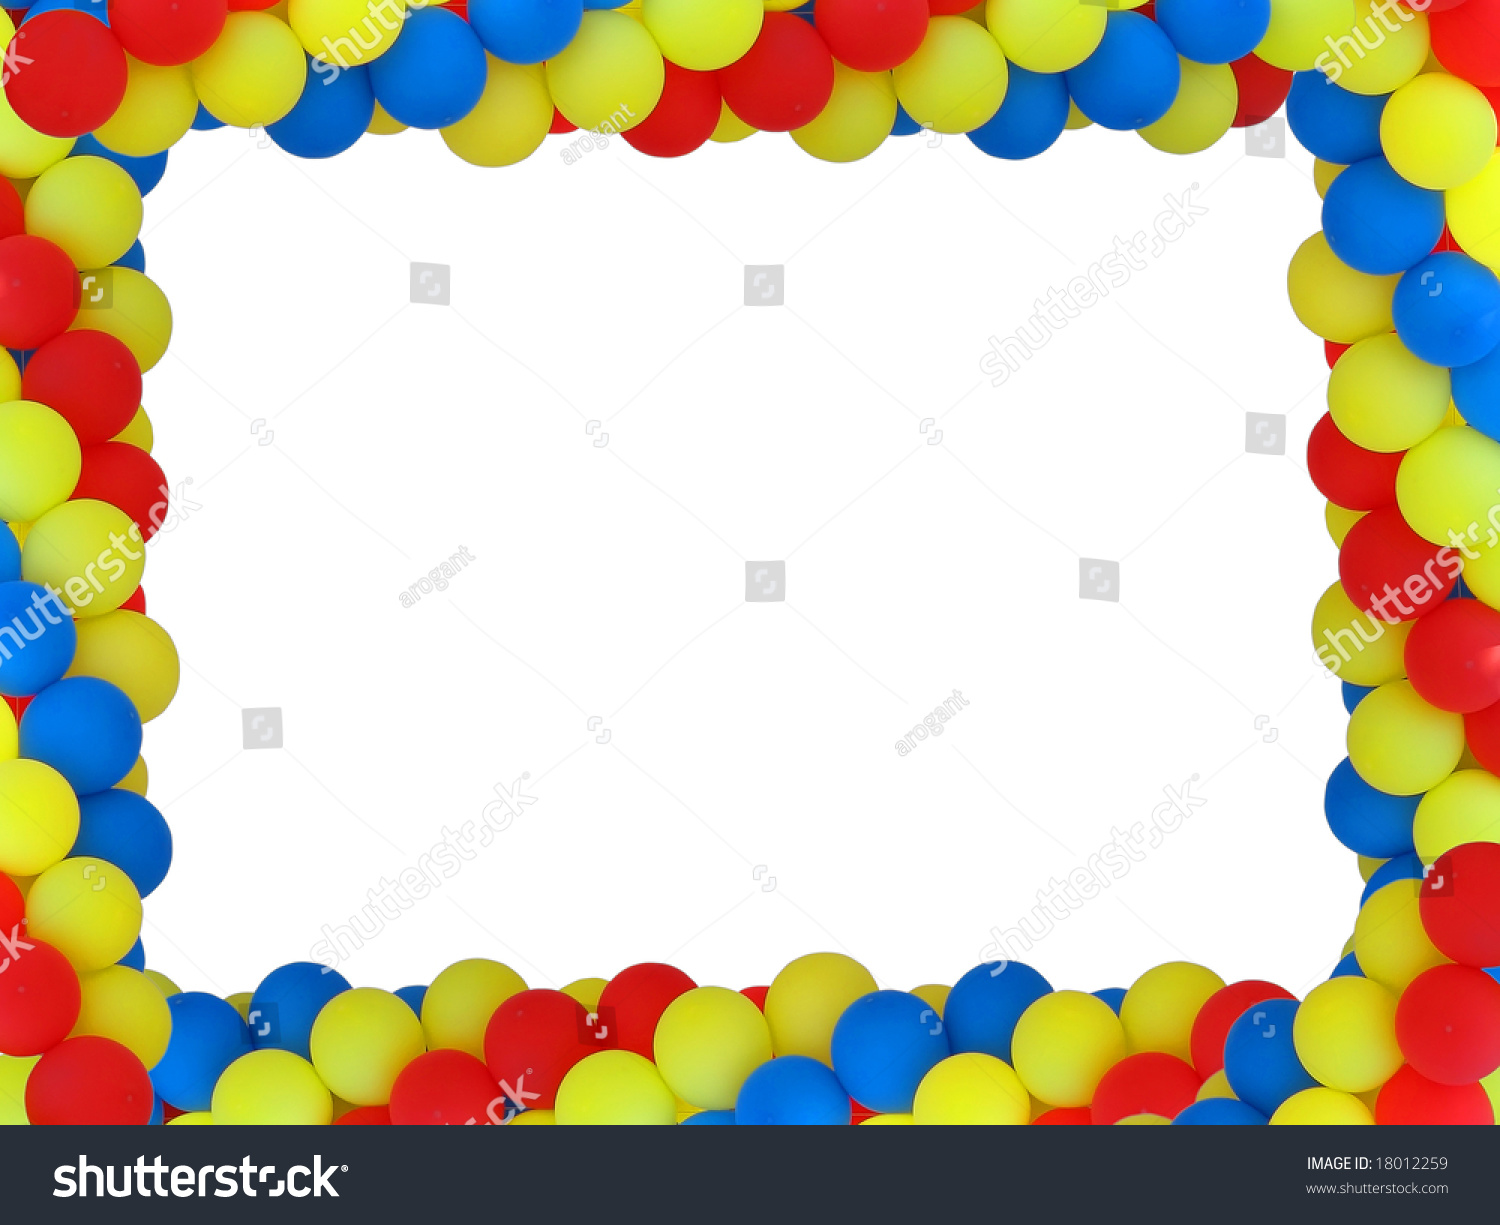 Colored Balloon Frame With Empty Place For Birthday